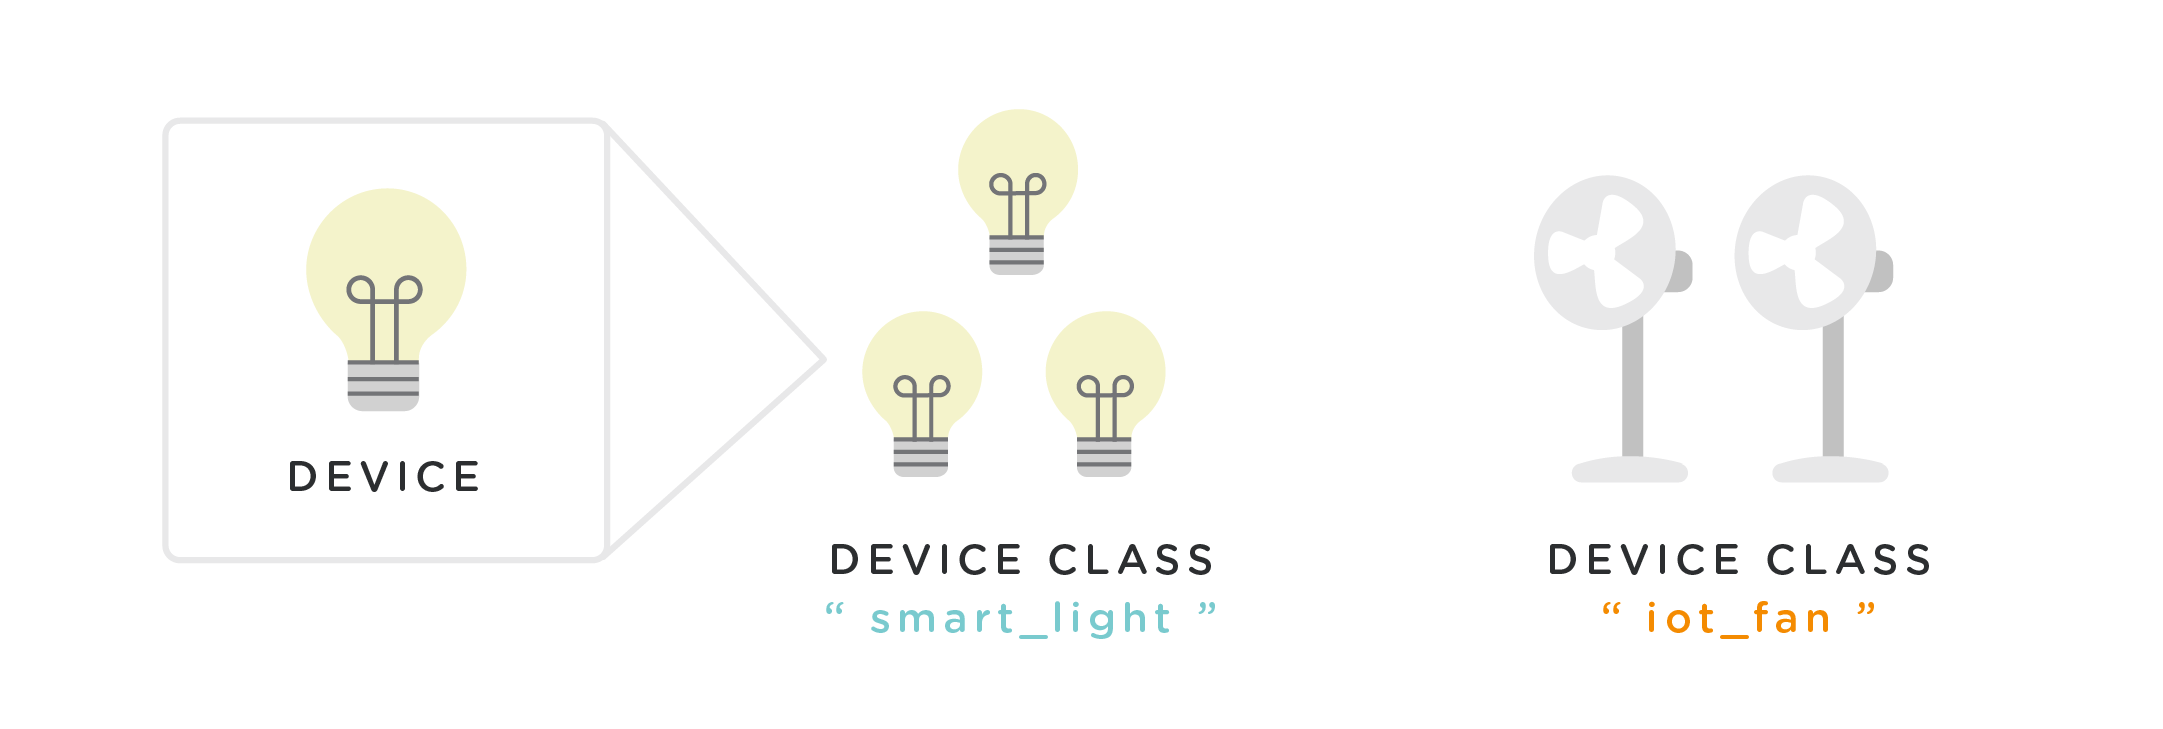 Diagram - Device and Device Classes